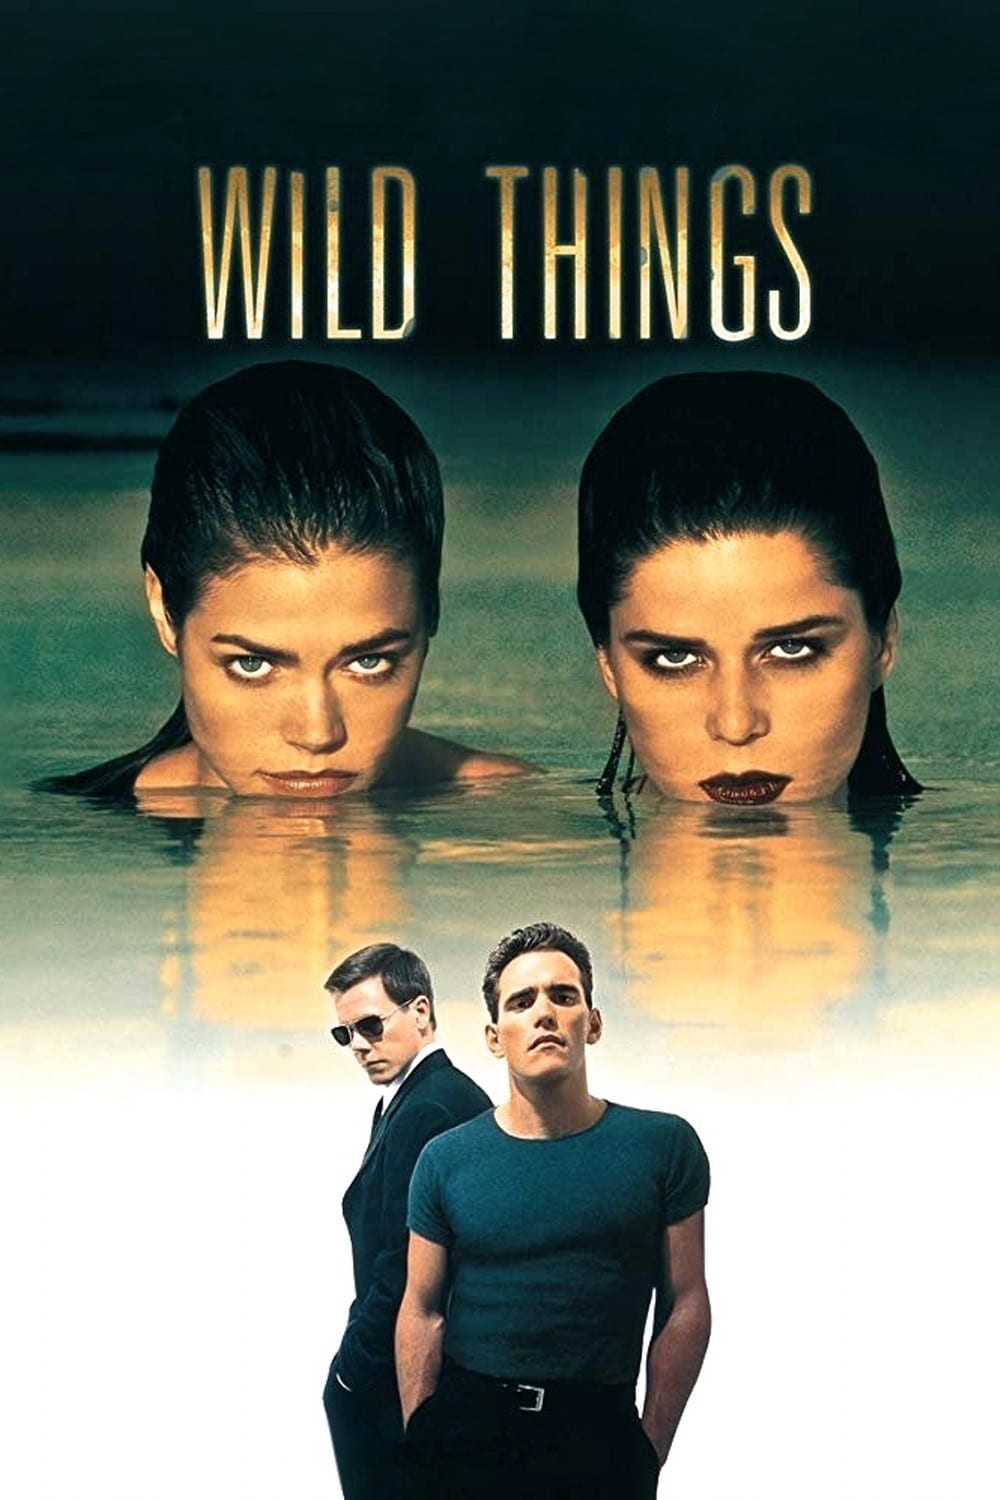 Criaturas salvajes (Wild Things)